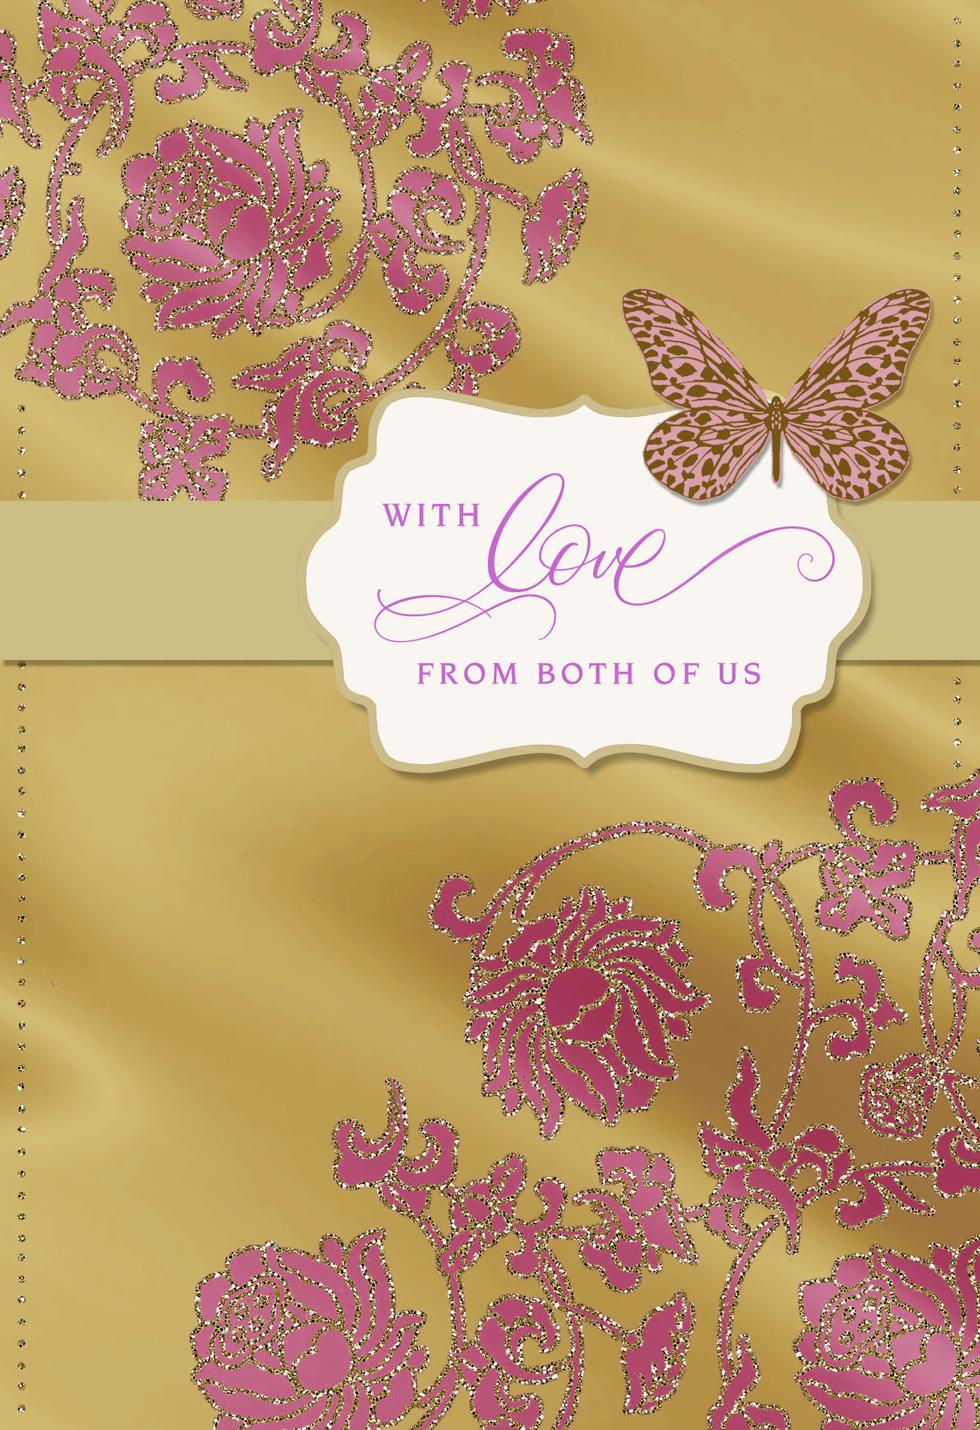 Love And Thanks Birthday Card For Mom From Both Of Us Greeting Cards Hallmark